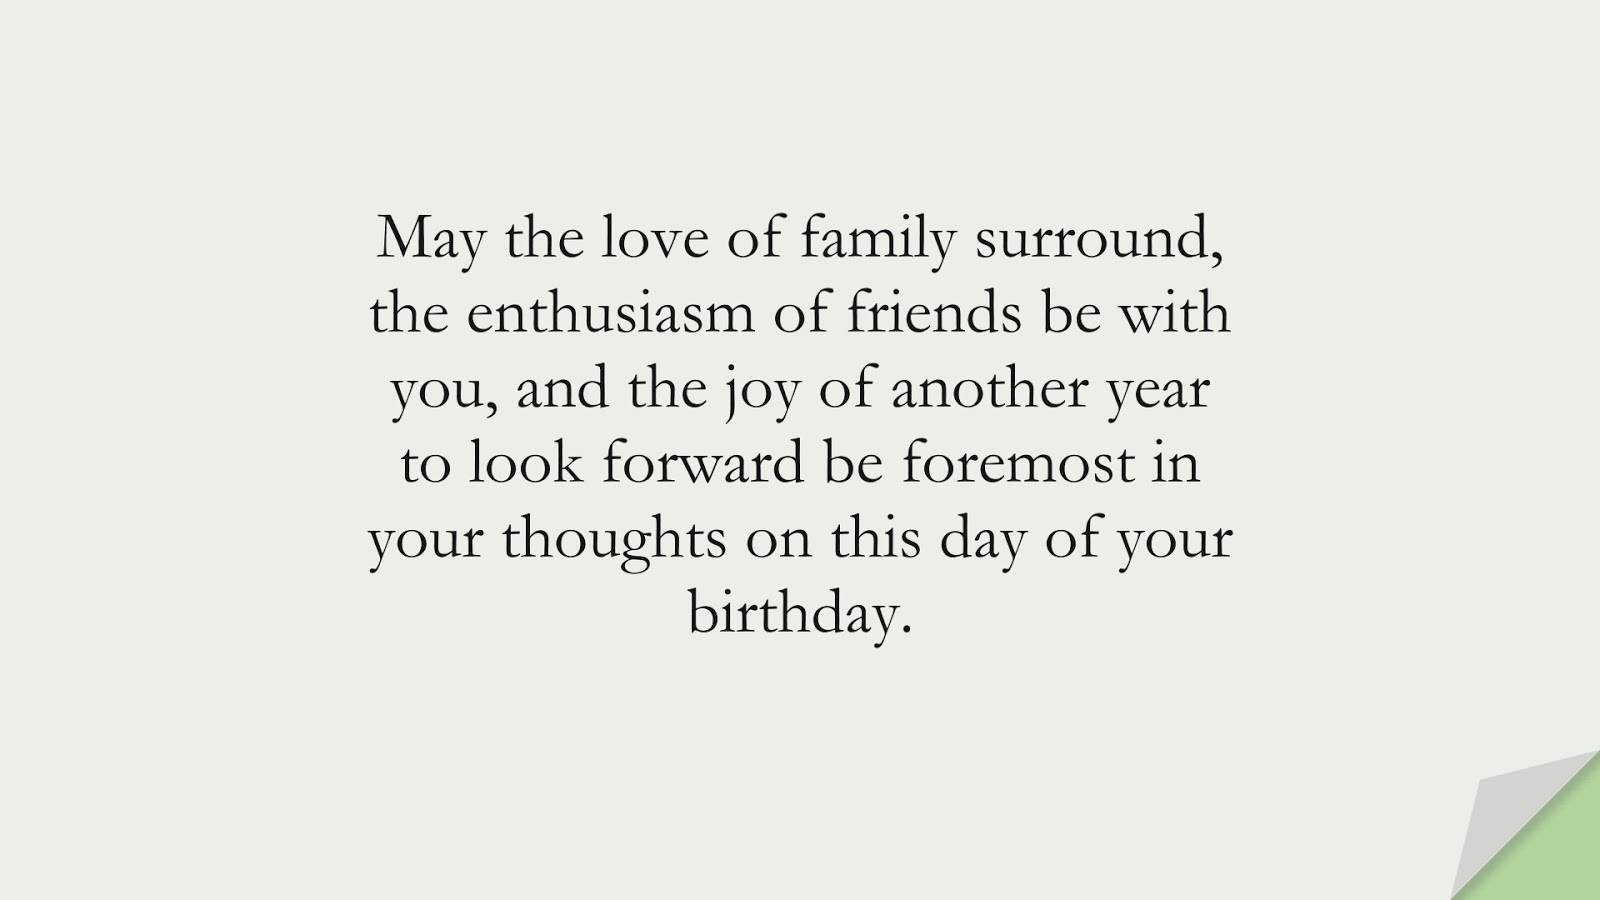 May the love of family surround, the enthusiasm of friends be with you, and the joy of another year to look forward be foremost in your thoughts on this day of your birthday.FALSE